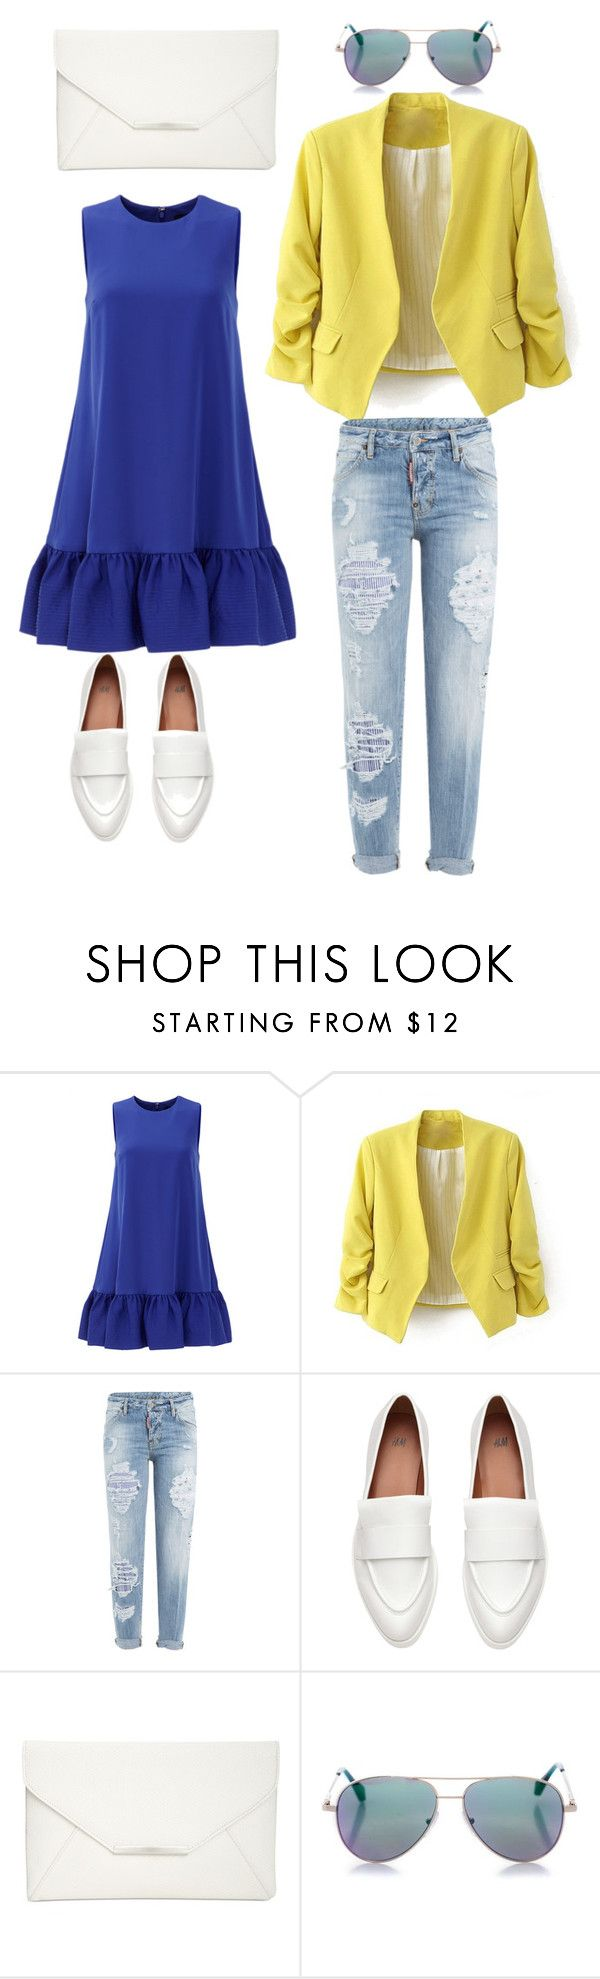 """chic"" by citrarizkiamalia on Polyvore featuring Cynthia Rowley, Dsquared2, Style & Co. and Cutler and Gross"